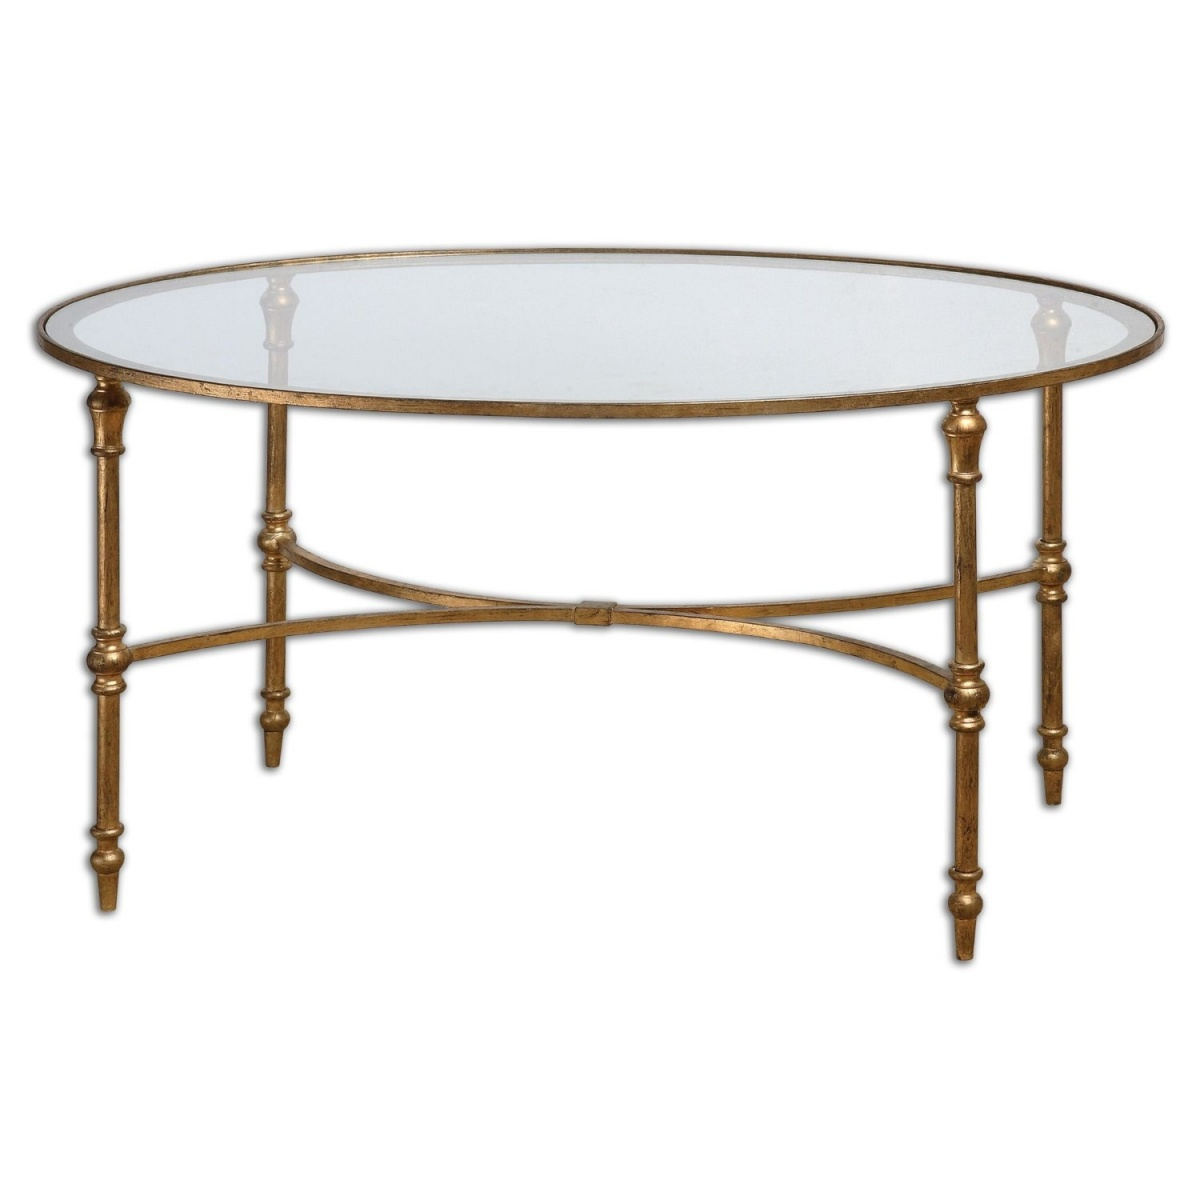 Round Metal Small Coffee Tables Simple And Glass Round Small Glass Coffee Table Round Metal And Glass Coffee Table (View 7 of 10)